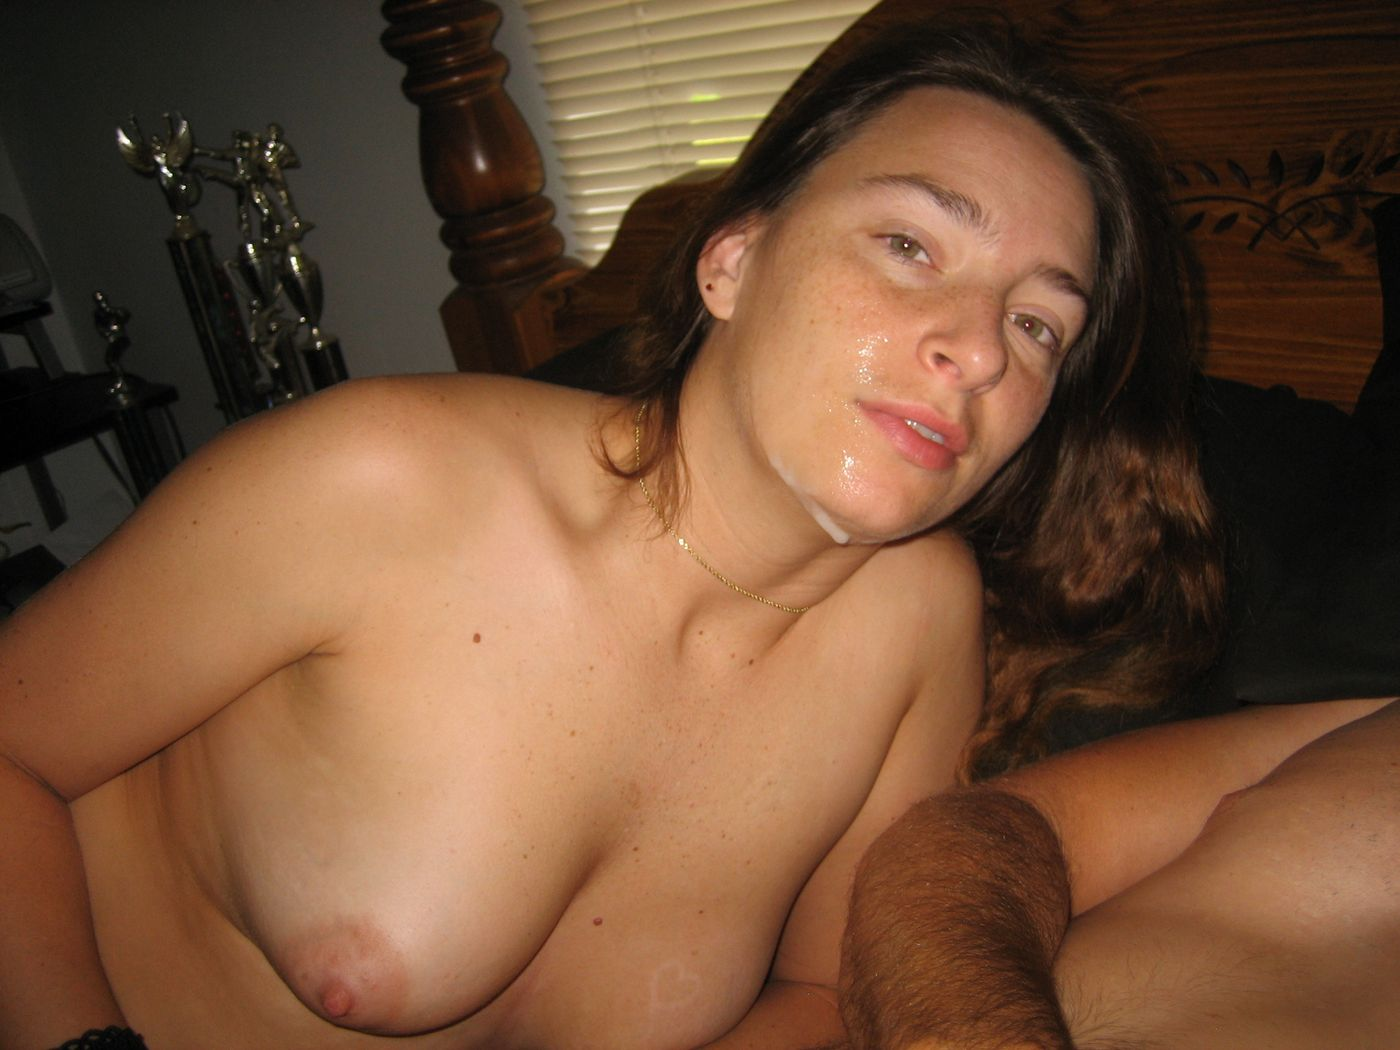 Mature amature sex tube